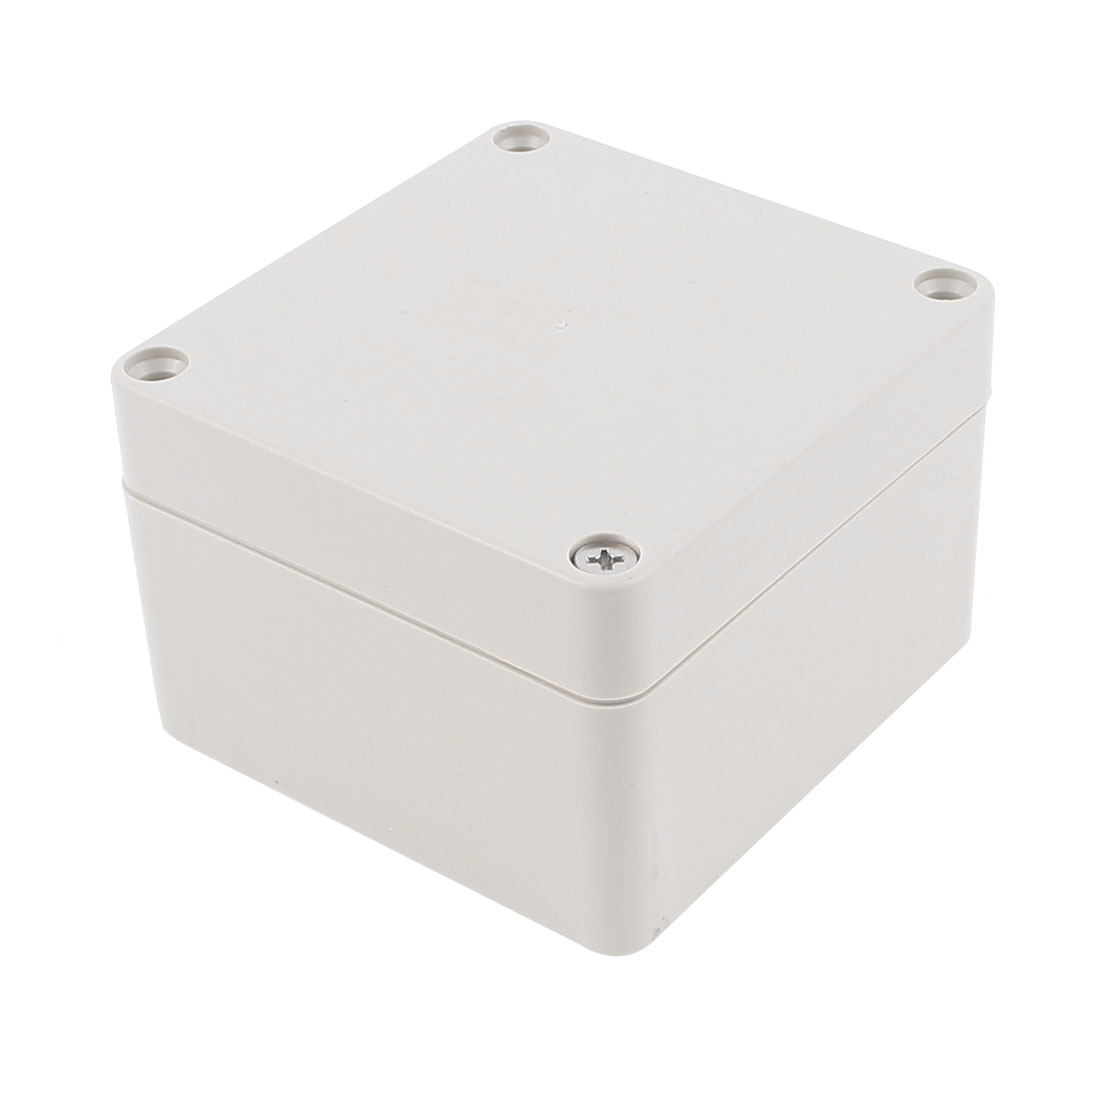 83 x 81 x 56mm Dustproof IP65 Junction Box DIY Terminal Connecting Box Enclosure